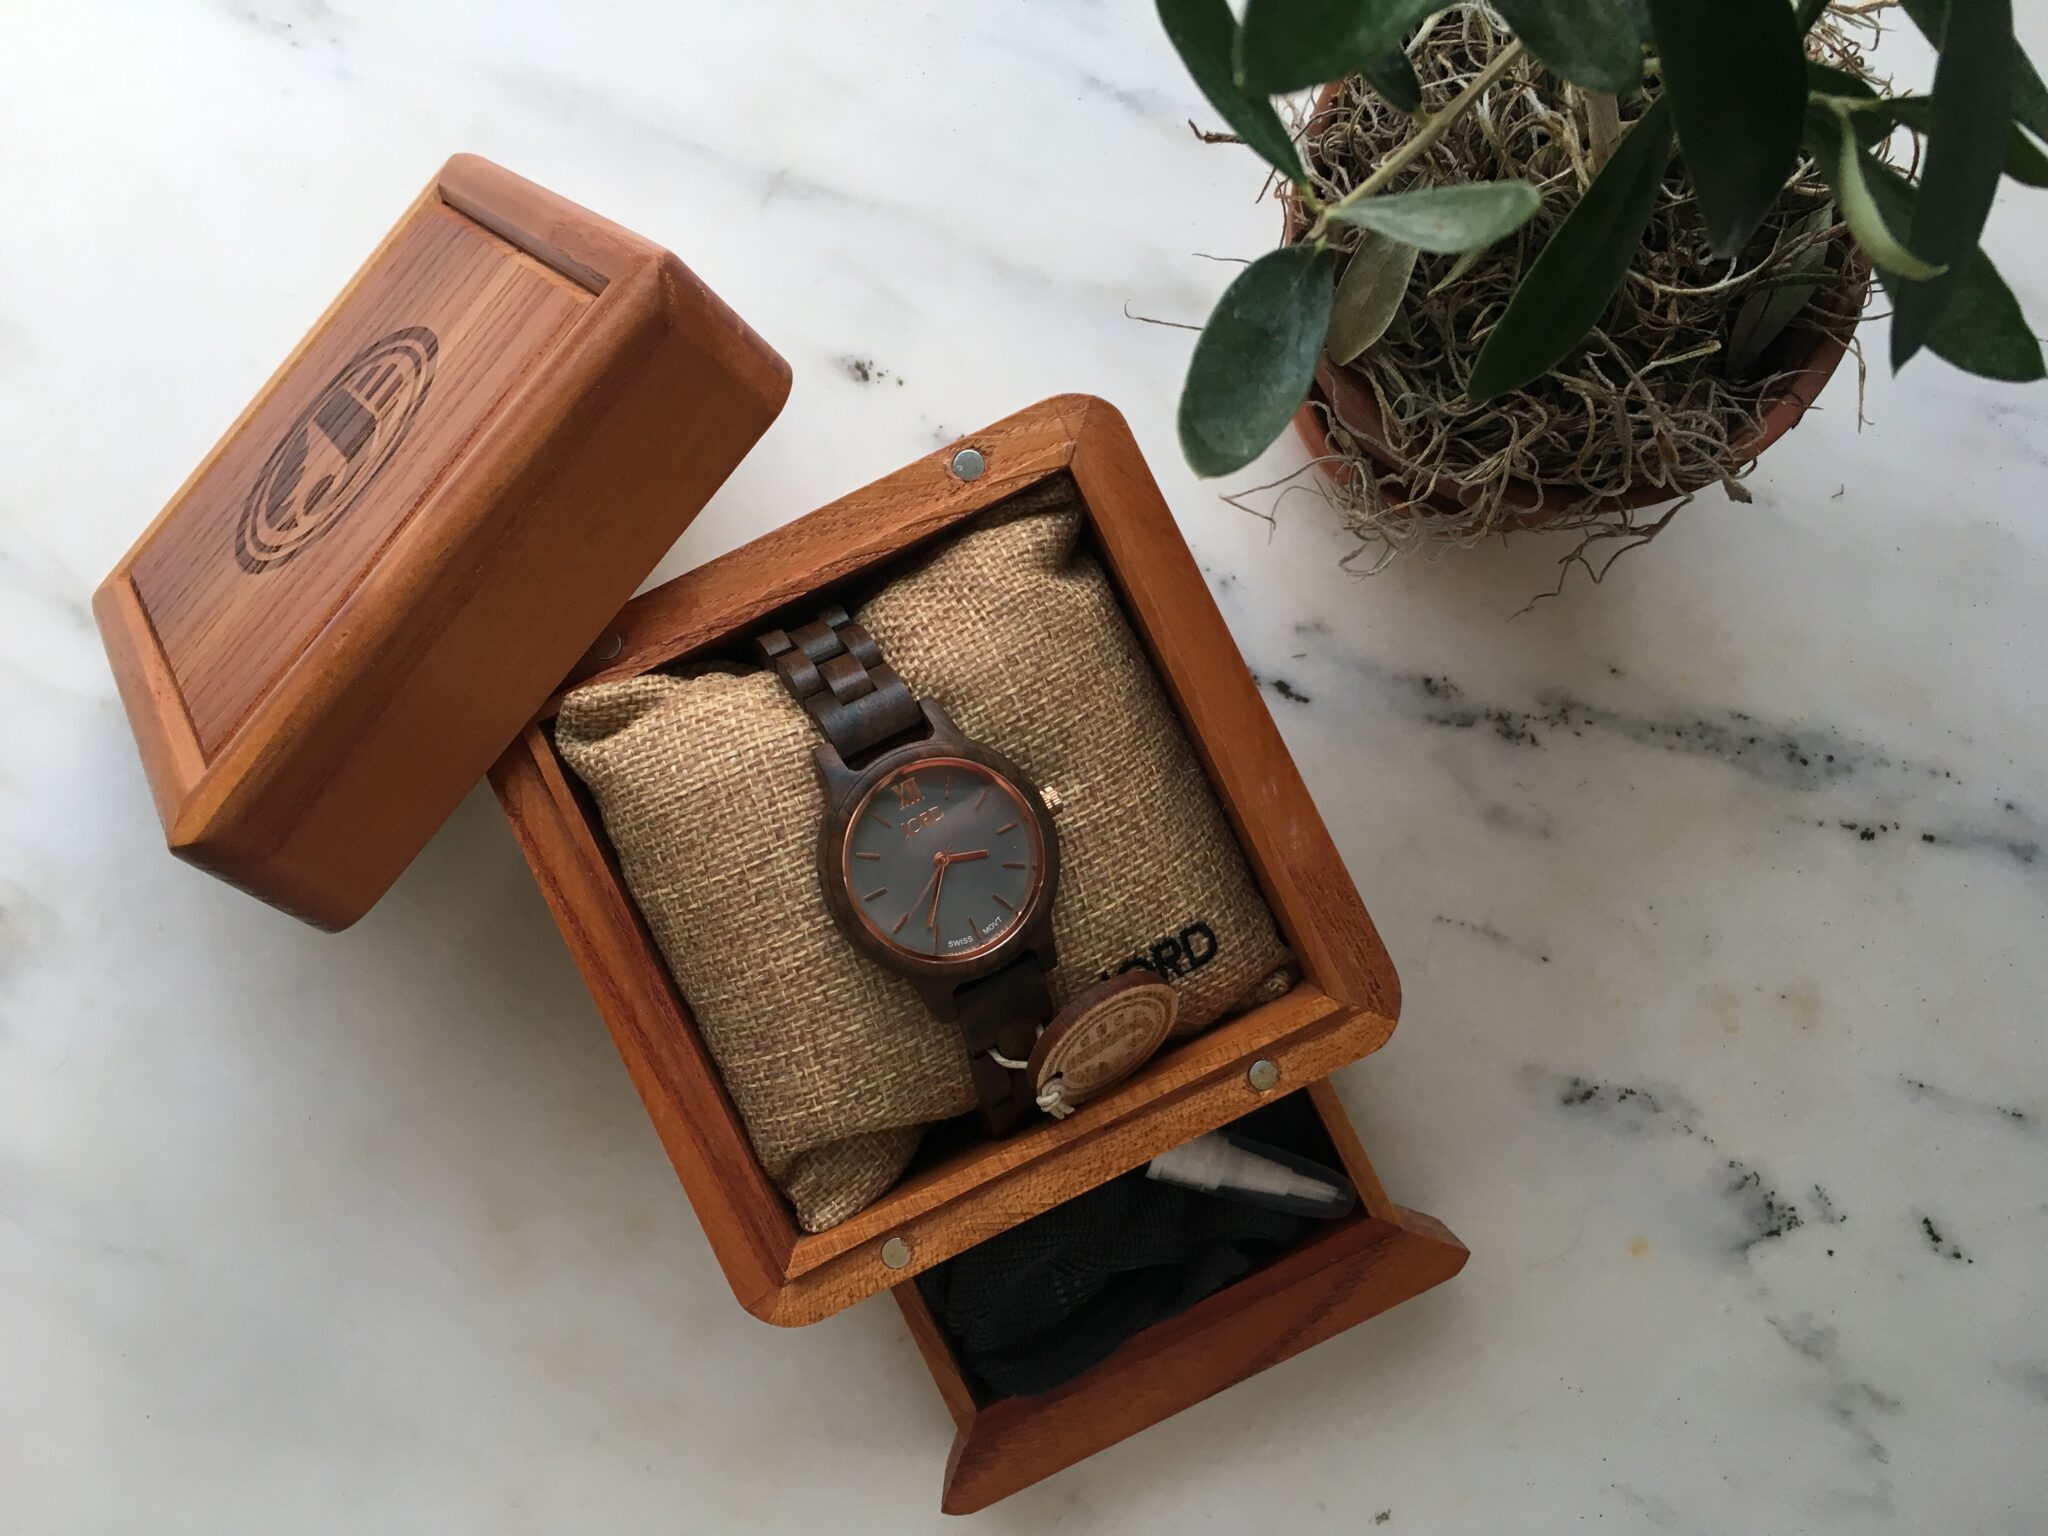 PRODUCTS I LOVE: JORD WOOD WATCH